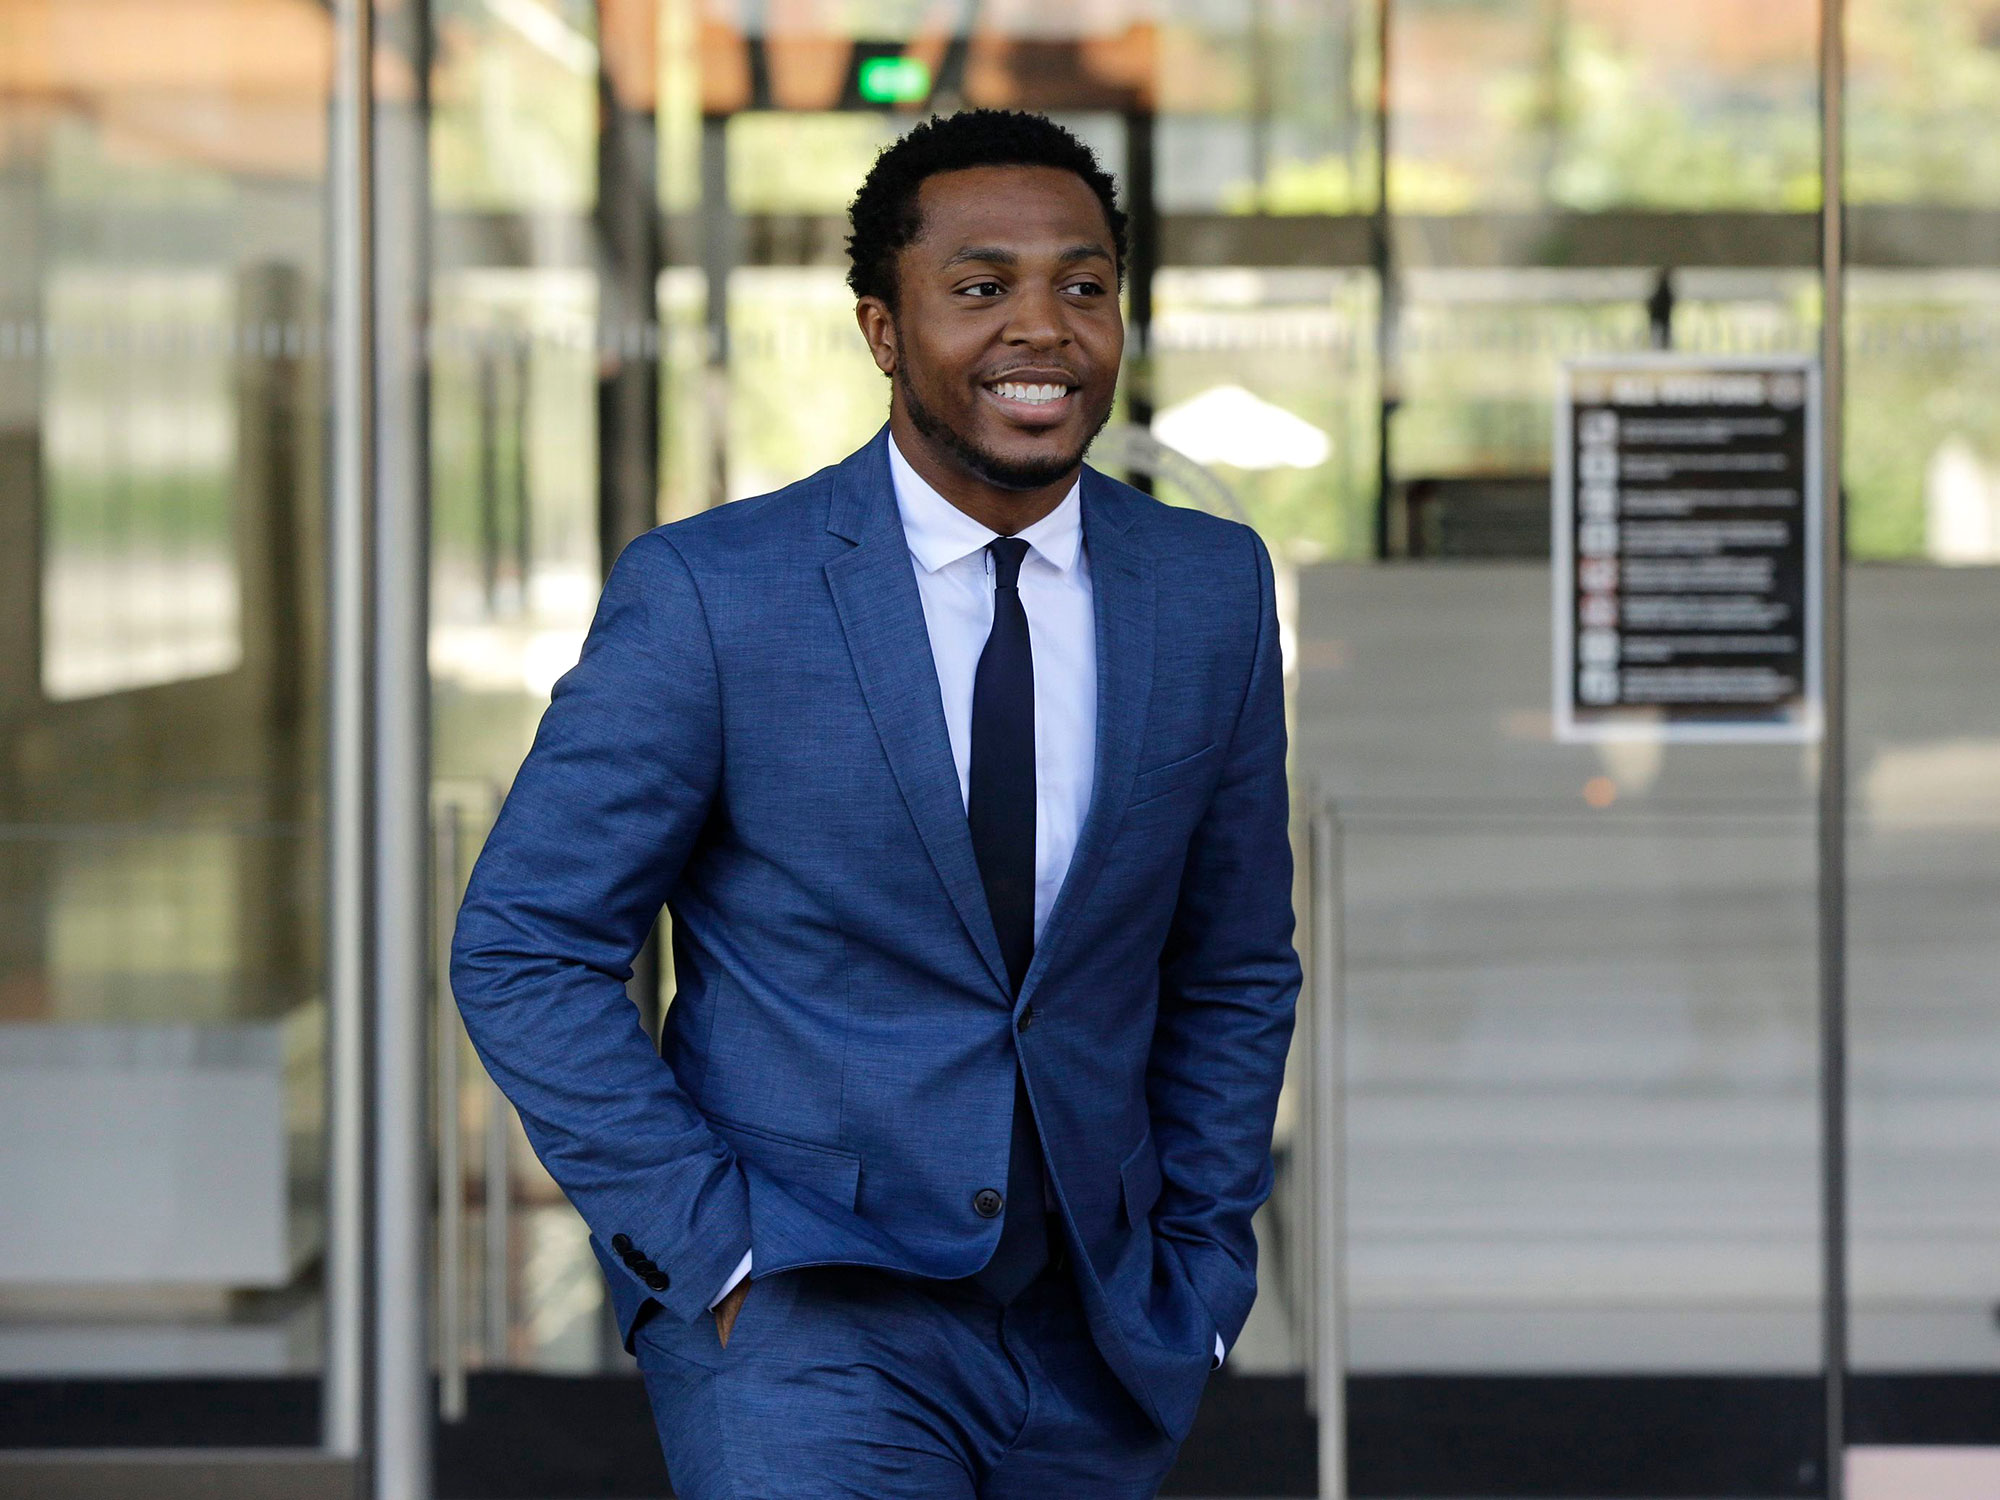 Marcus Gray Defeats Katy Perry In Court - Marcus Gray smiles as he leaves the federal courthouse August 1, 2019 in Los Angeles, California.